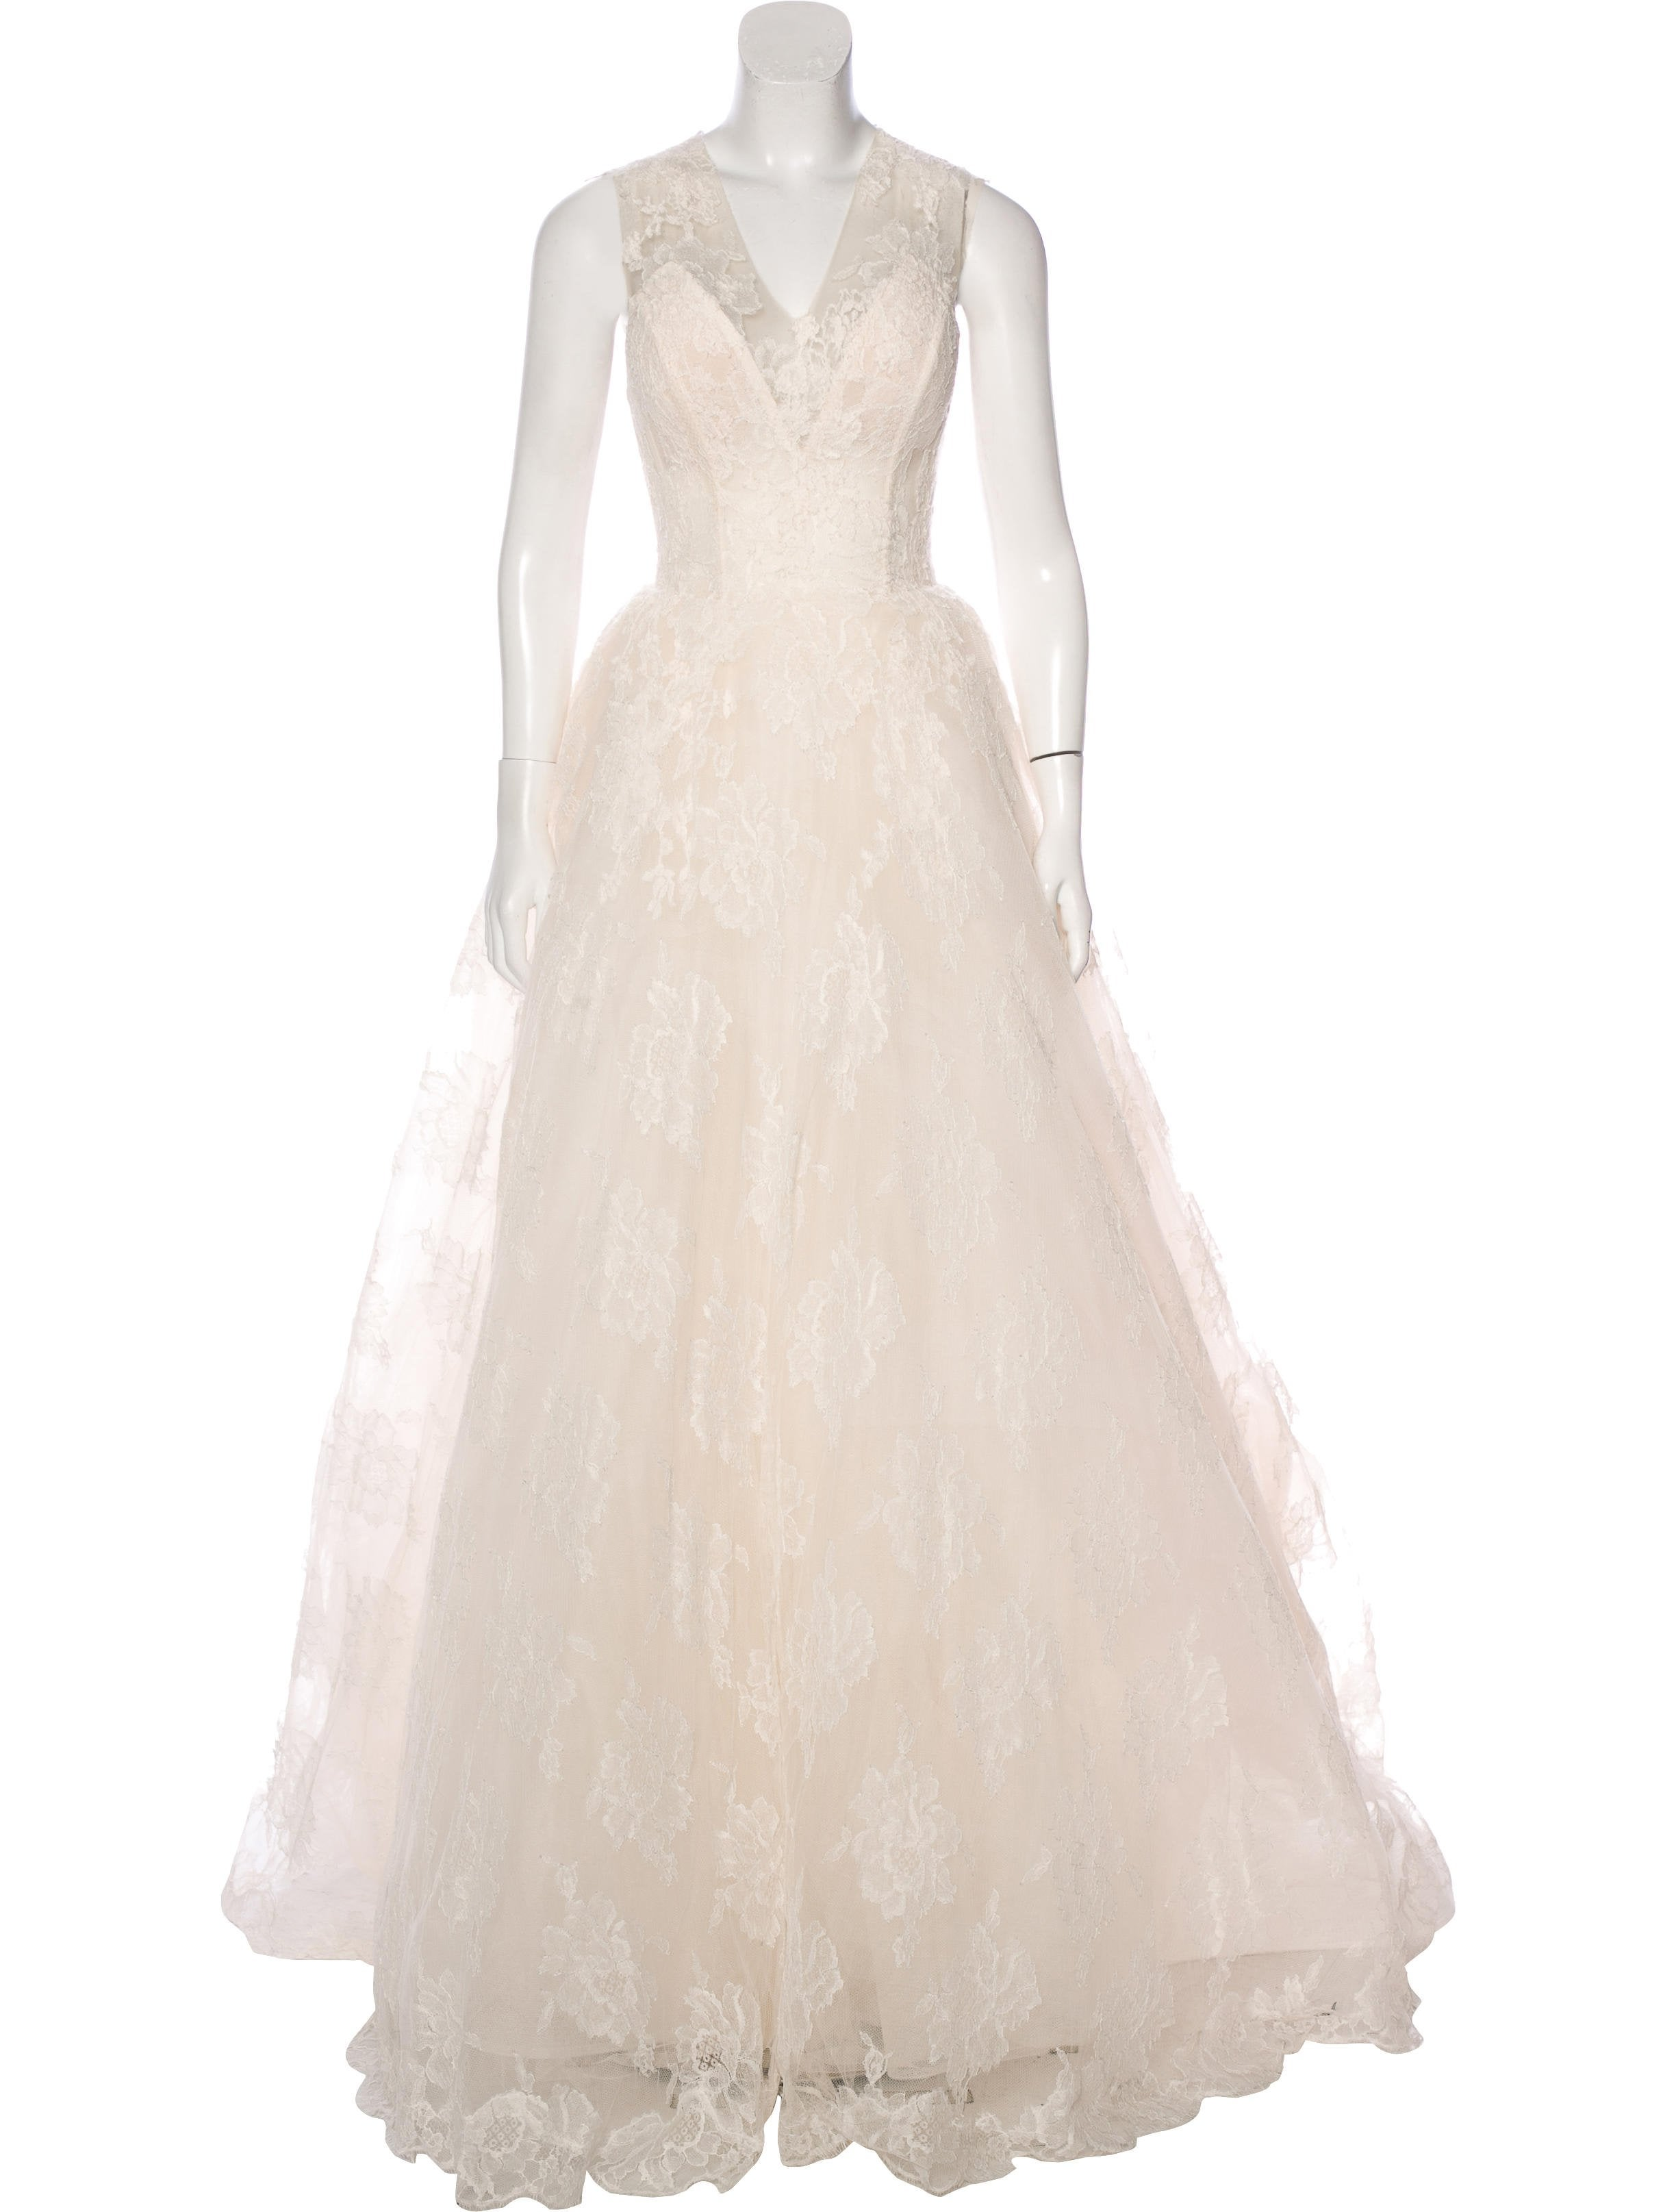 Monique Lhuillier Chantilly Lace Wedding Gown - Clothing - MOI22210 ...